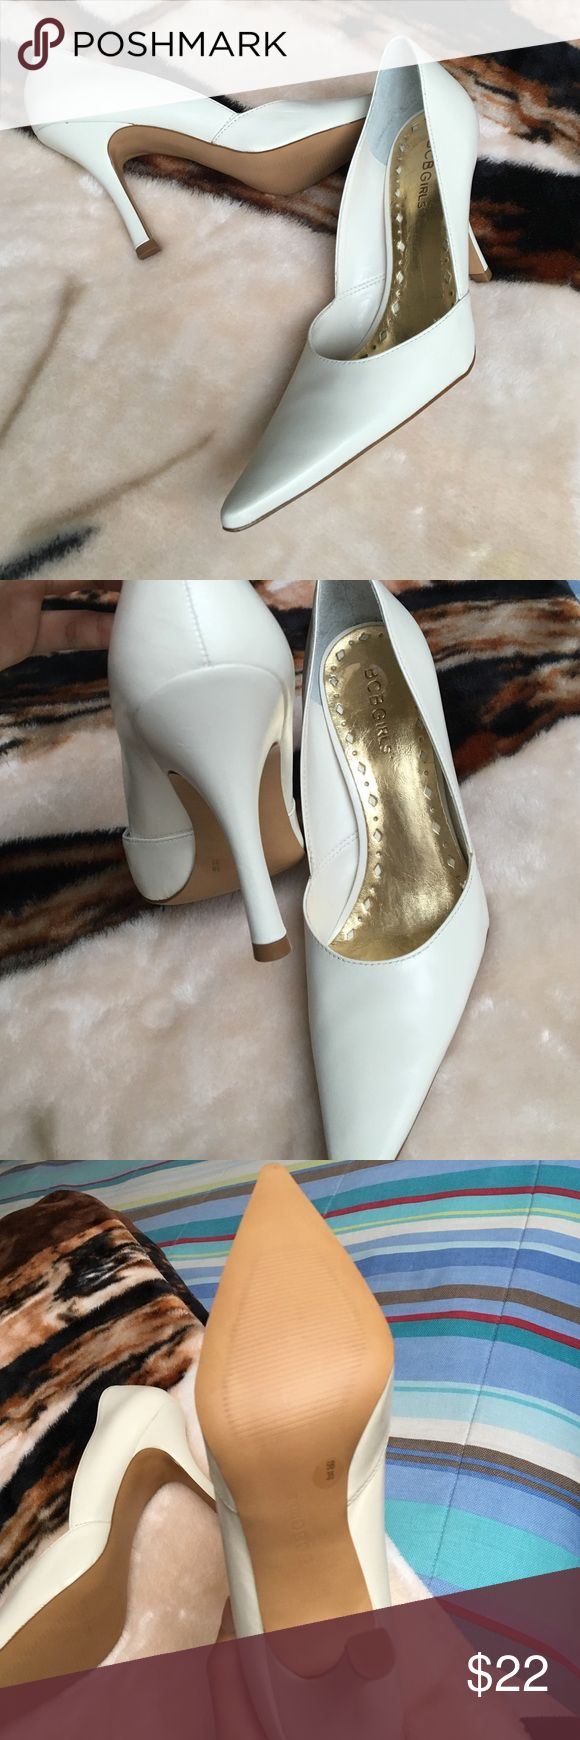 BCBG Girls light cream pumps Good condition and easy to match with outfits BCBGirls Shoes Heels